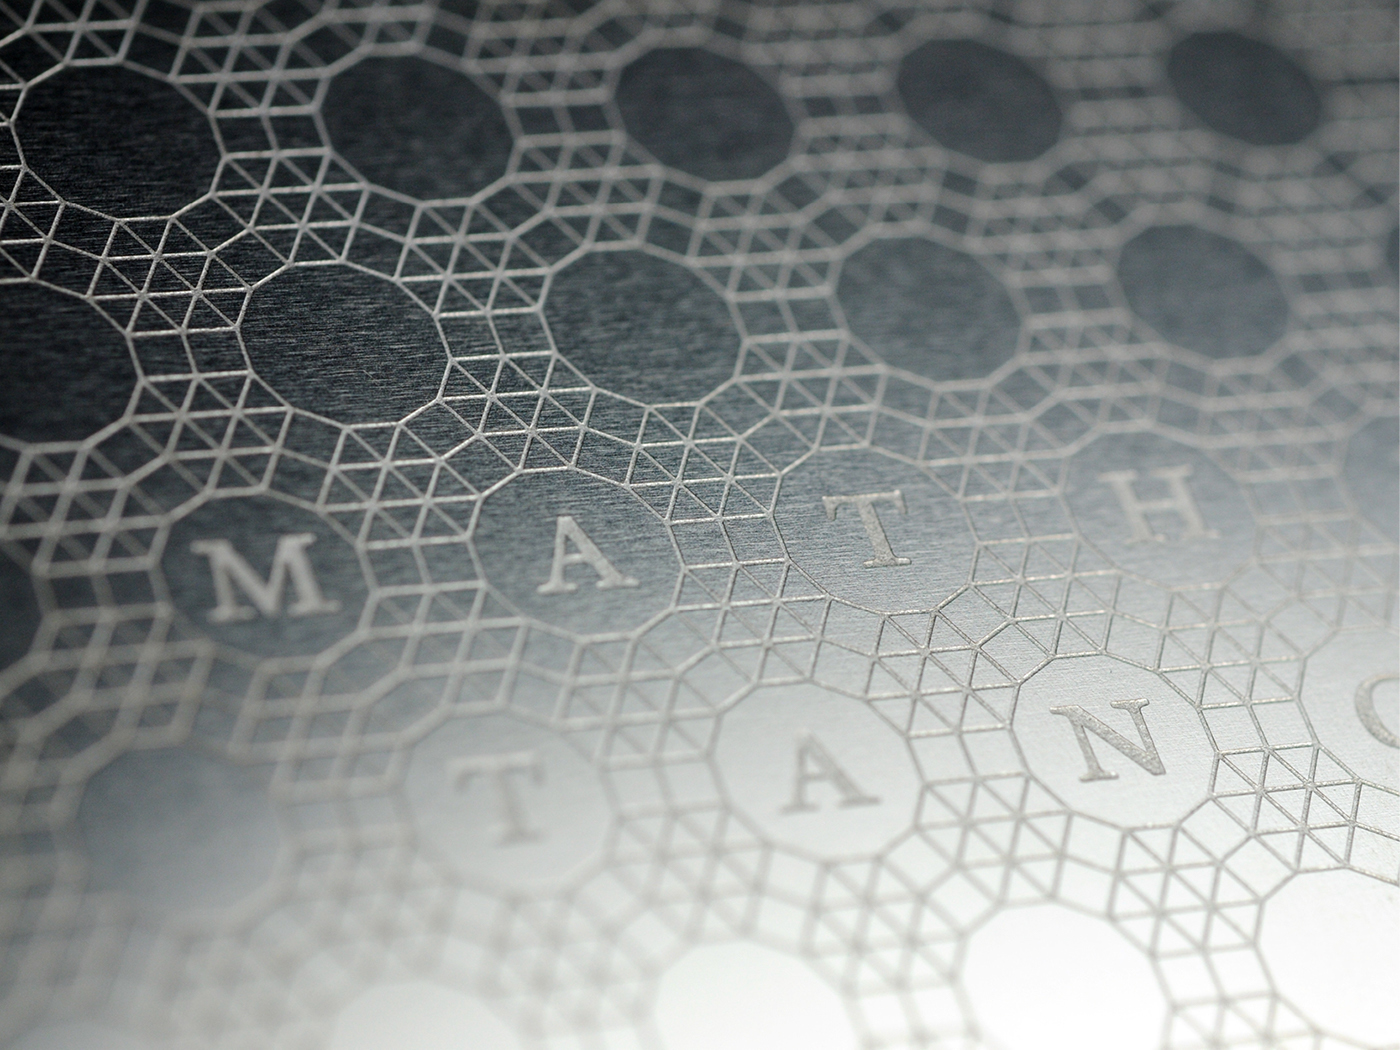 High finish embossing foil Foil Blocking metal metal card business card Compliment Slip Stationery logo Logotype high finish print Blind Embossing leather pattern visual identity brand visual identity brand identity luxery luxe